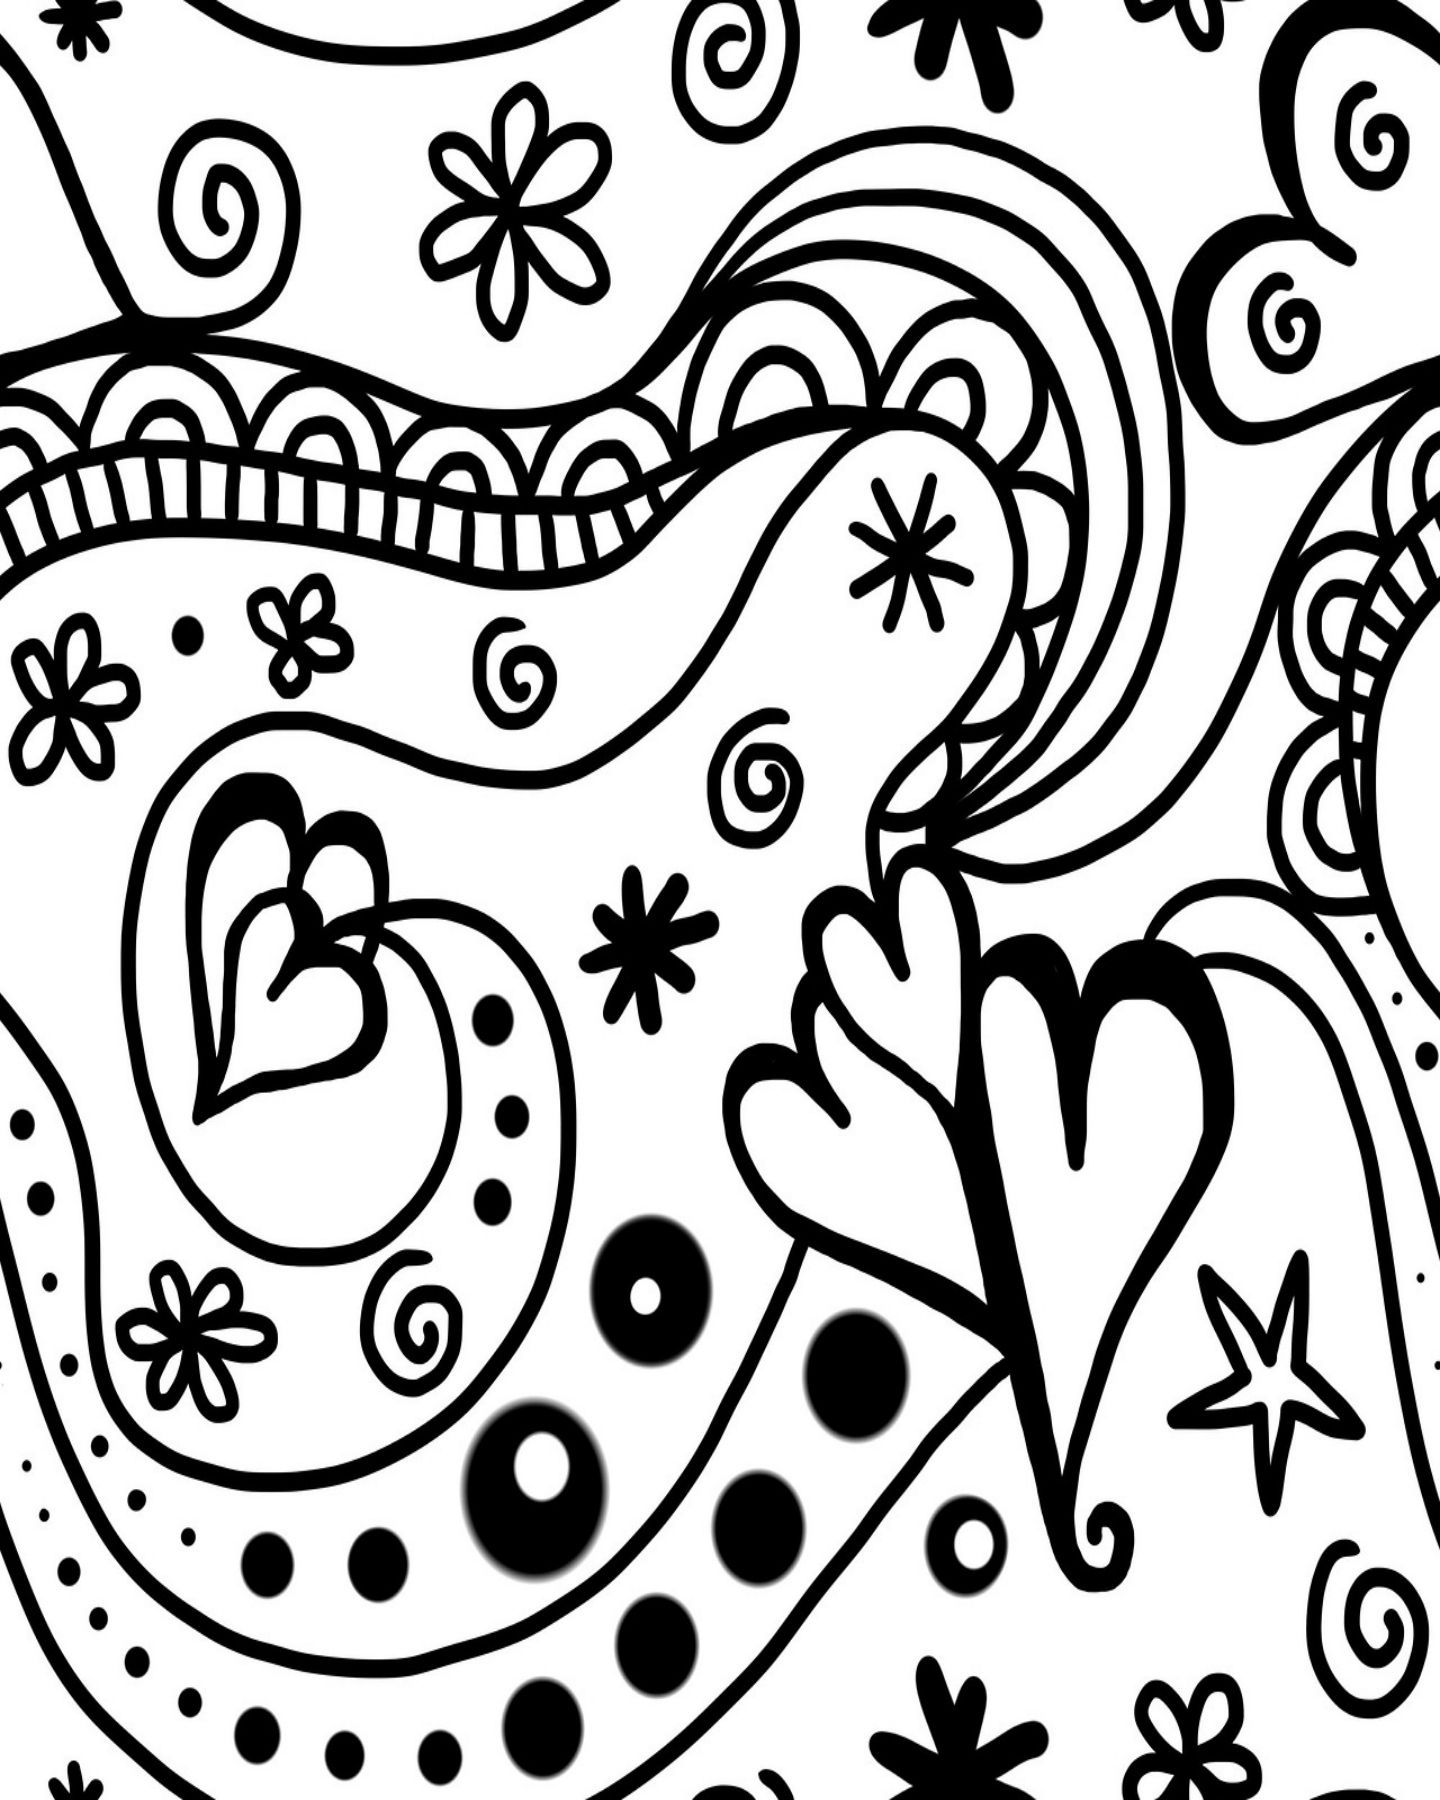 Free Printable Groovy Hearts Coloring Page for Valentine\'s Day ...